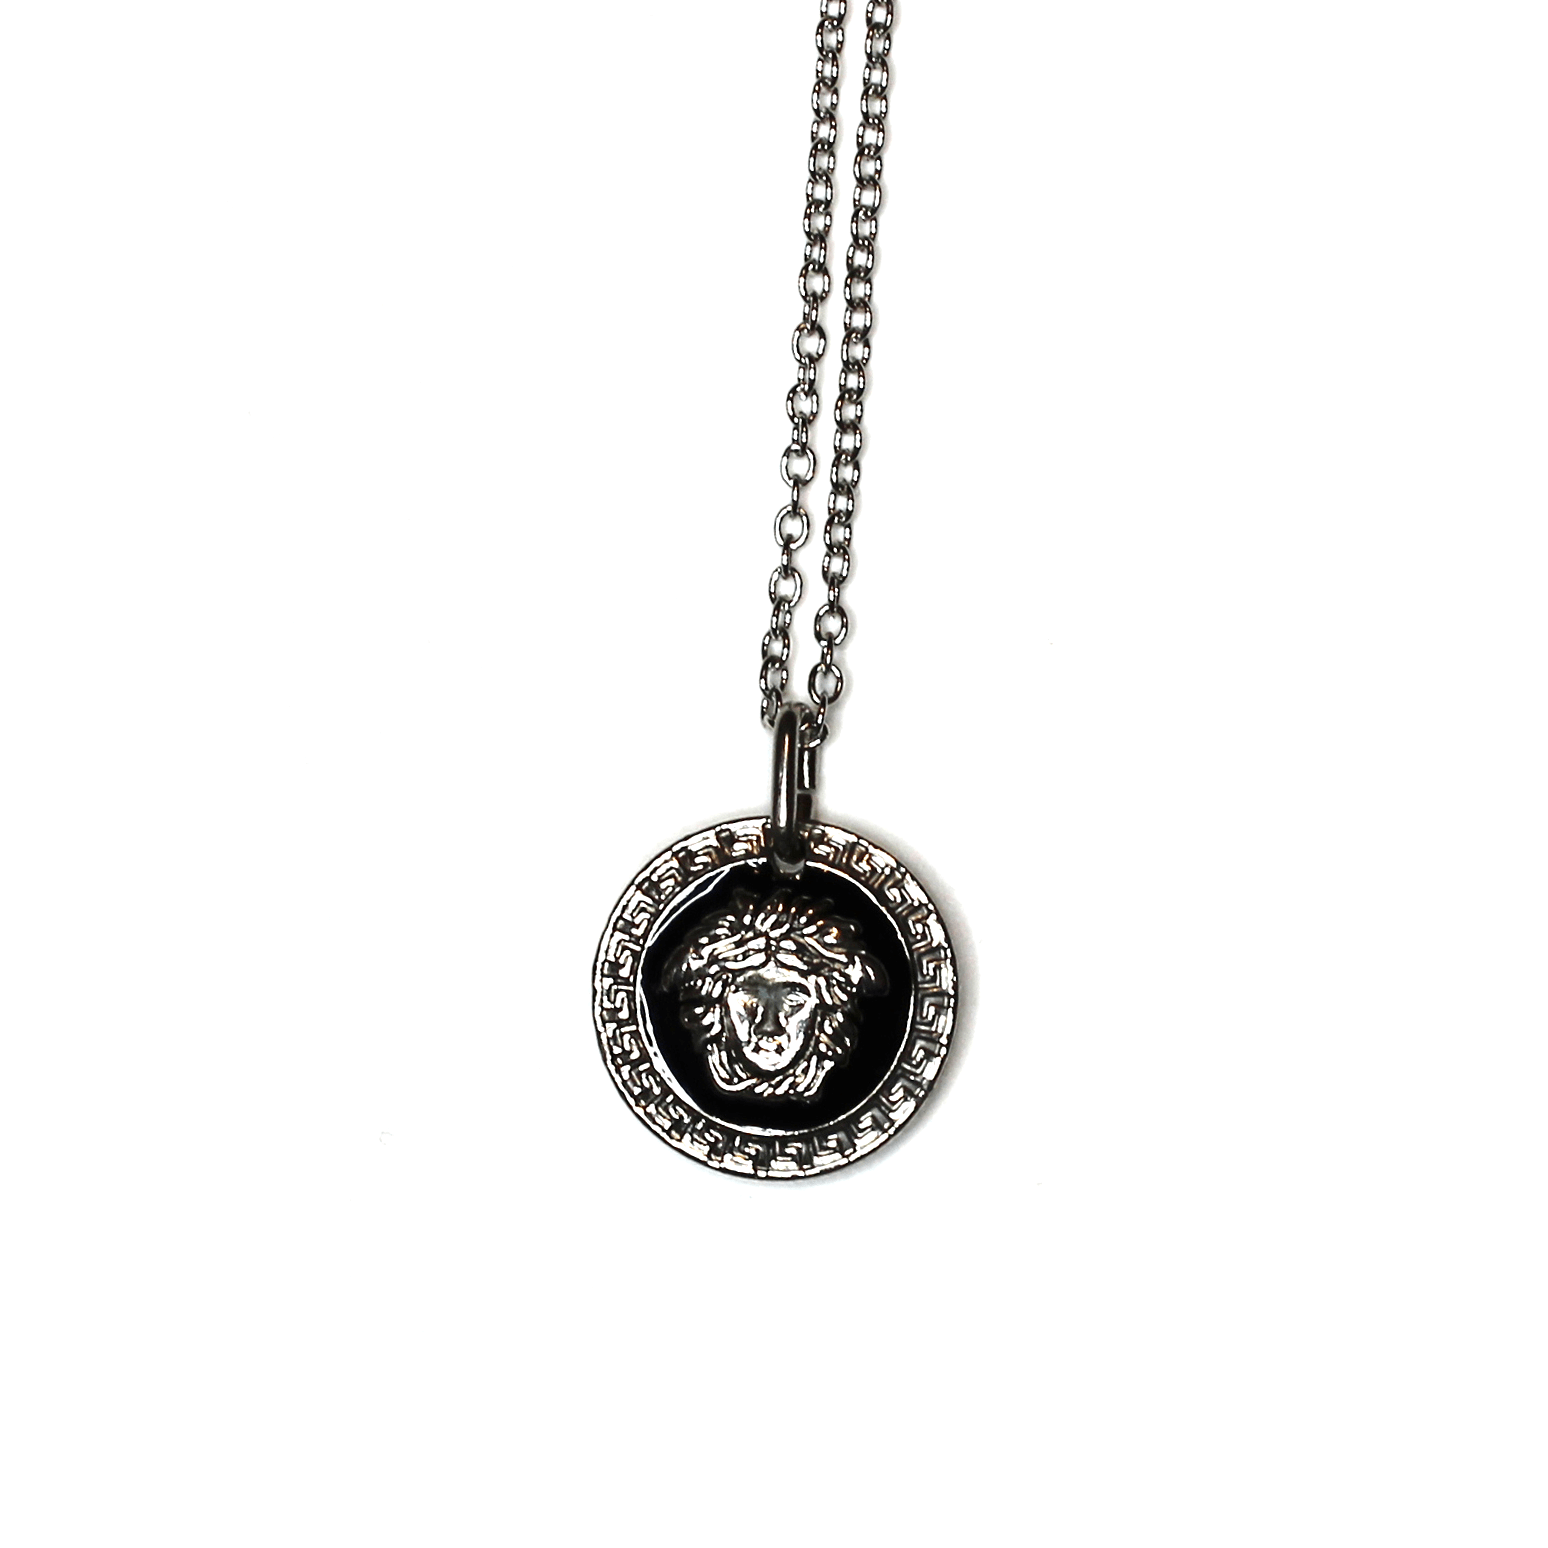 Silver Gianni Versace Black/ White Double Sided Medusa Head Coin Pendent Chain RSTKD Vintage